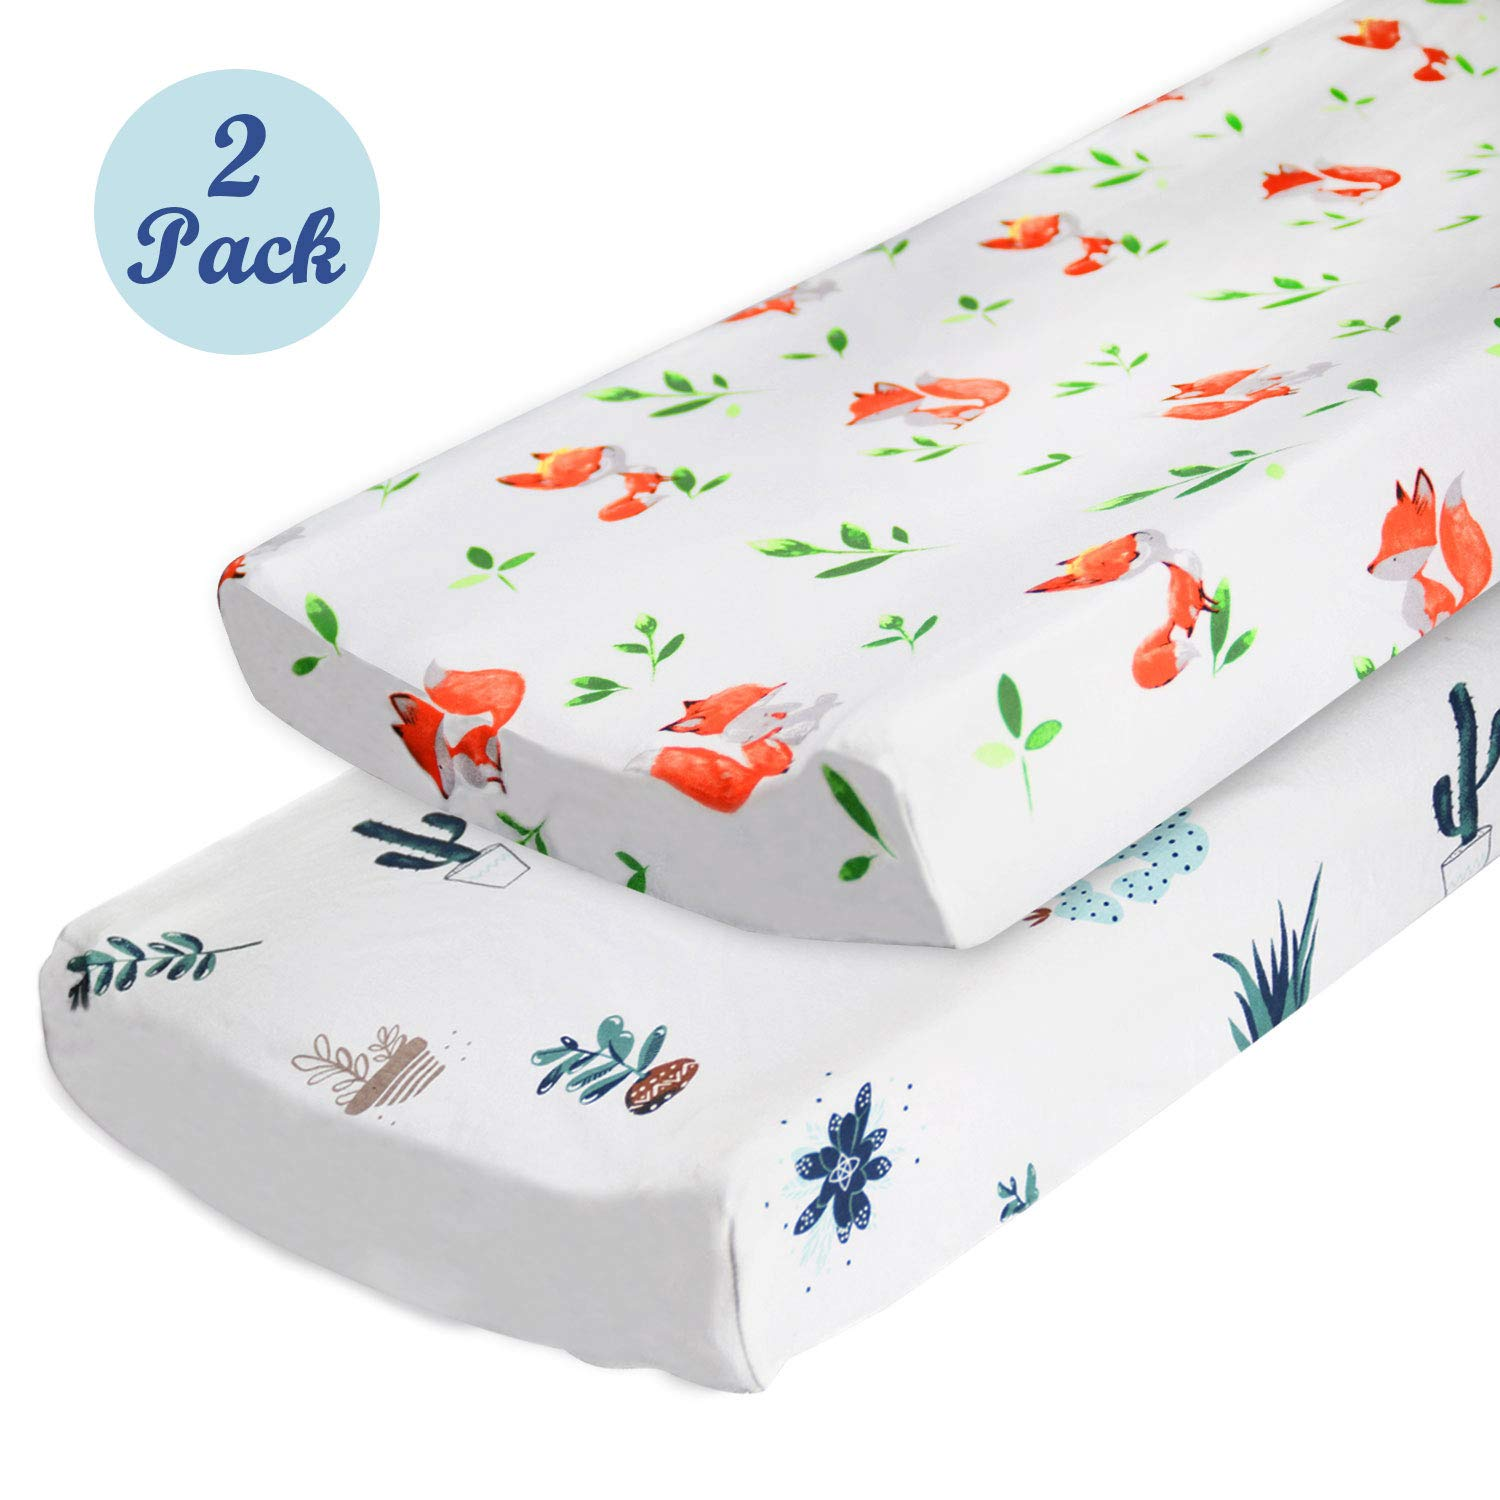 Changing Pad Covers or Cradle Sheets for Baby Boys Girls, 2-Pack by Cherub